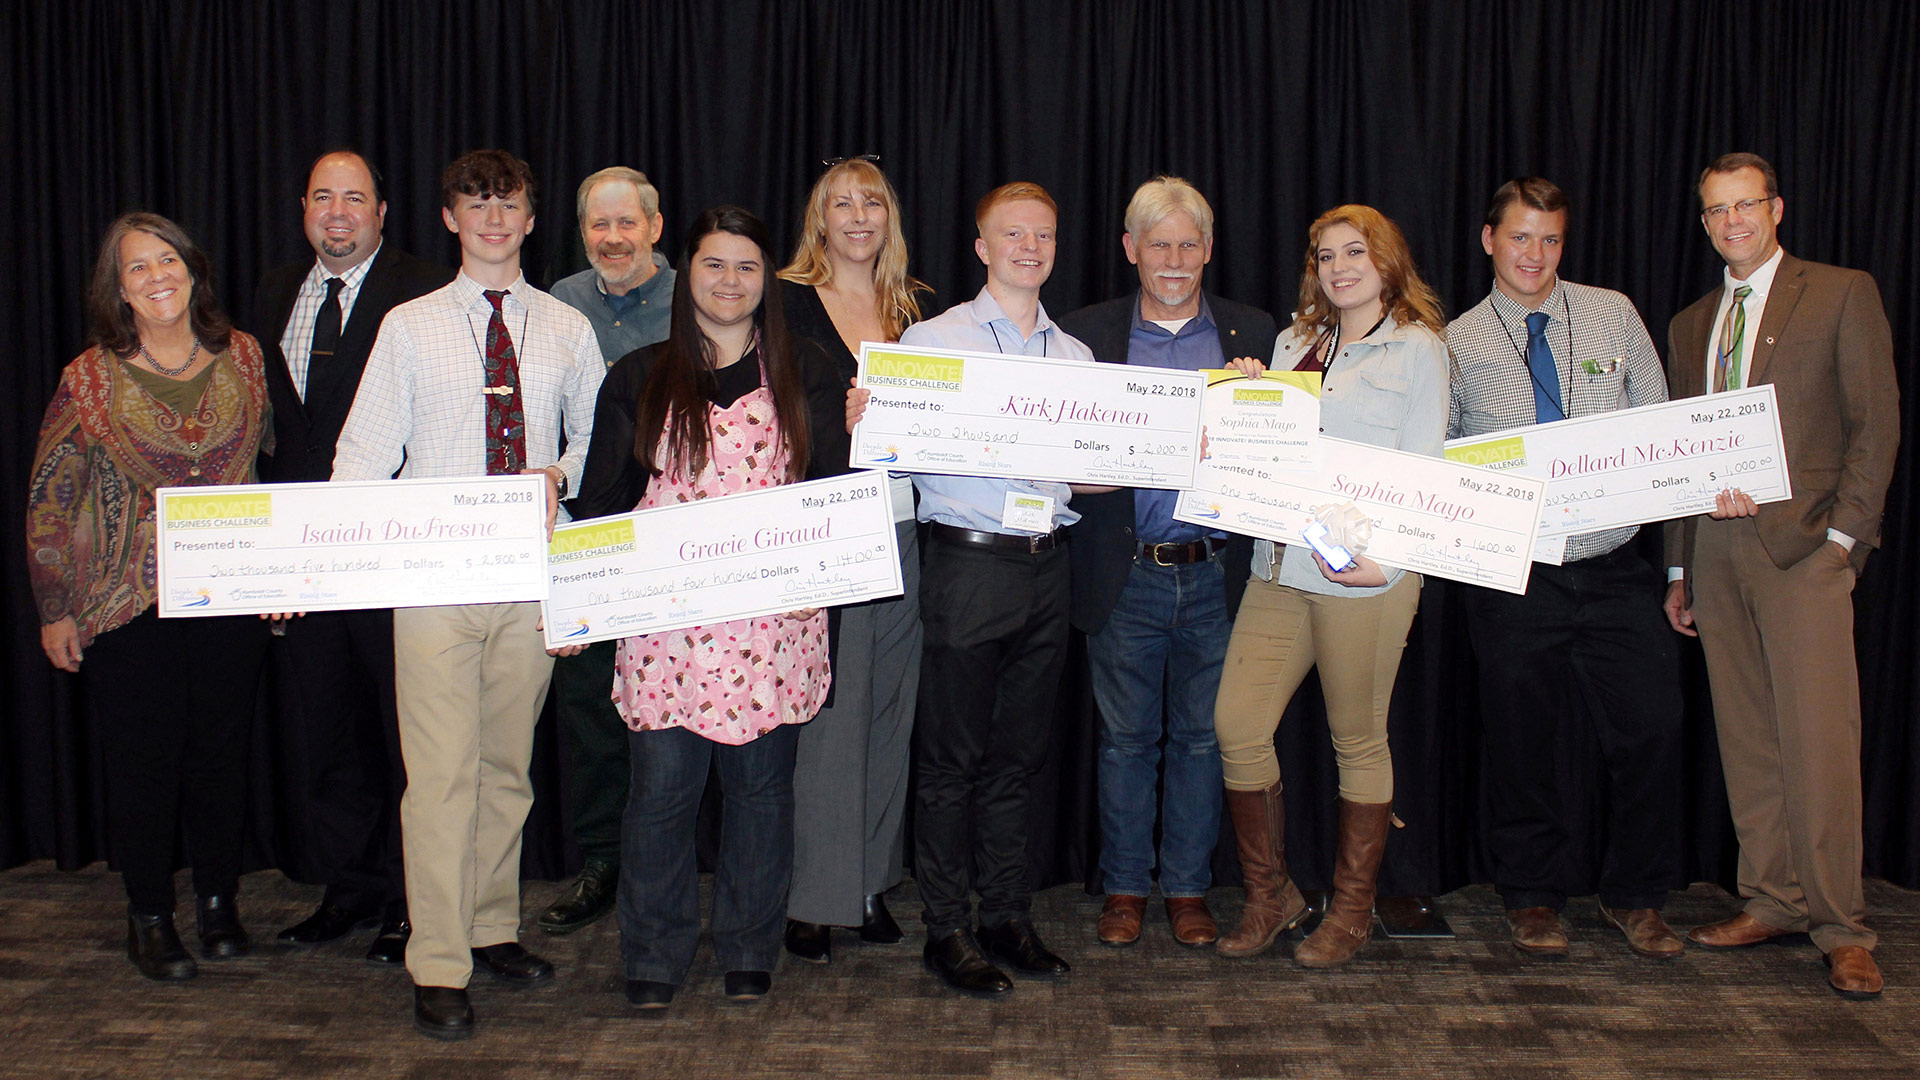 Sixth Annual INNOVATE! Business Challenge Awards Youth Start-ups